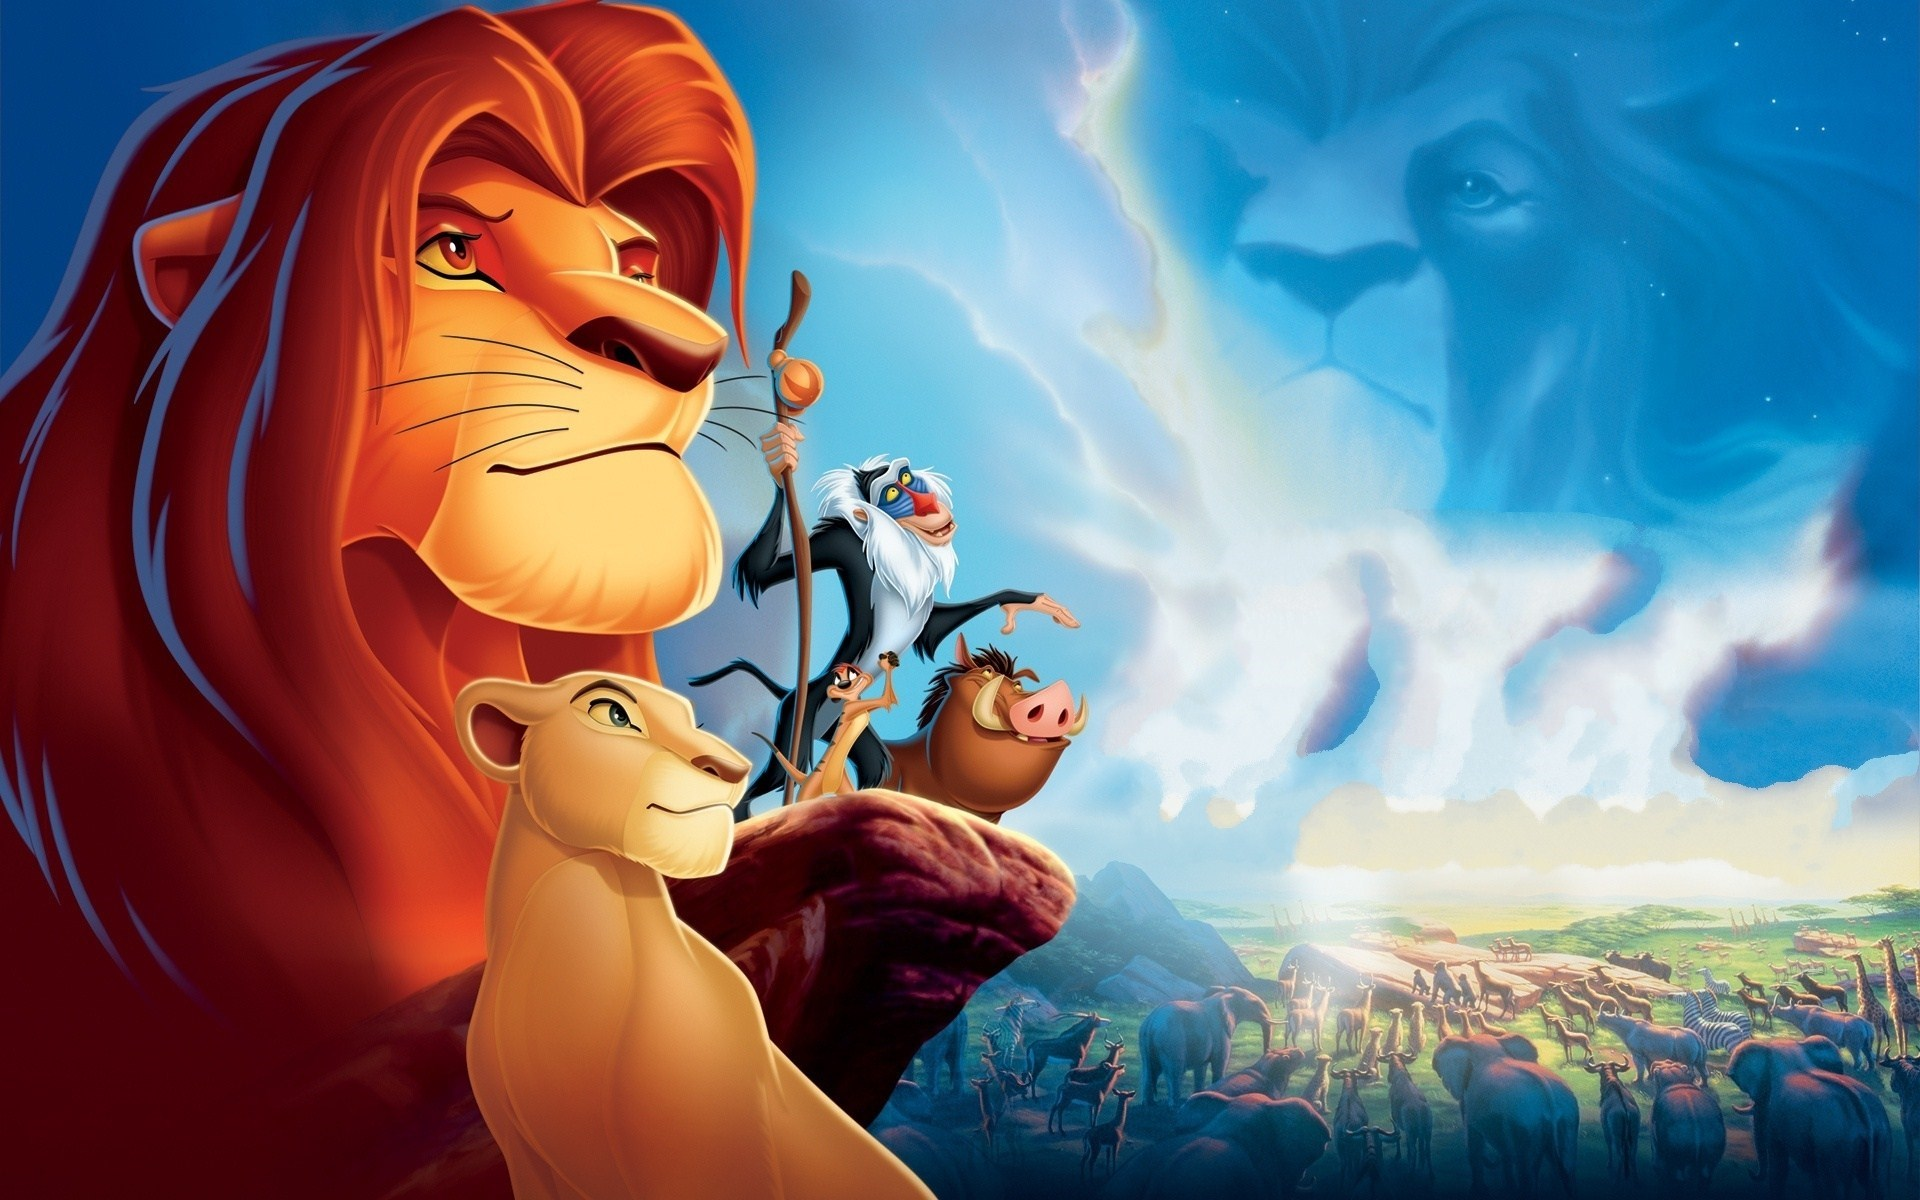 Lion King Cartoon Timon Pumbaa Nala Simba Mandrill Rafiki Mufasa